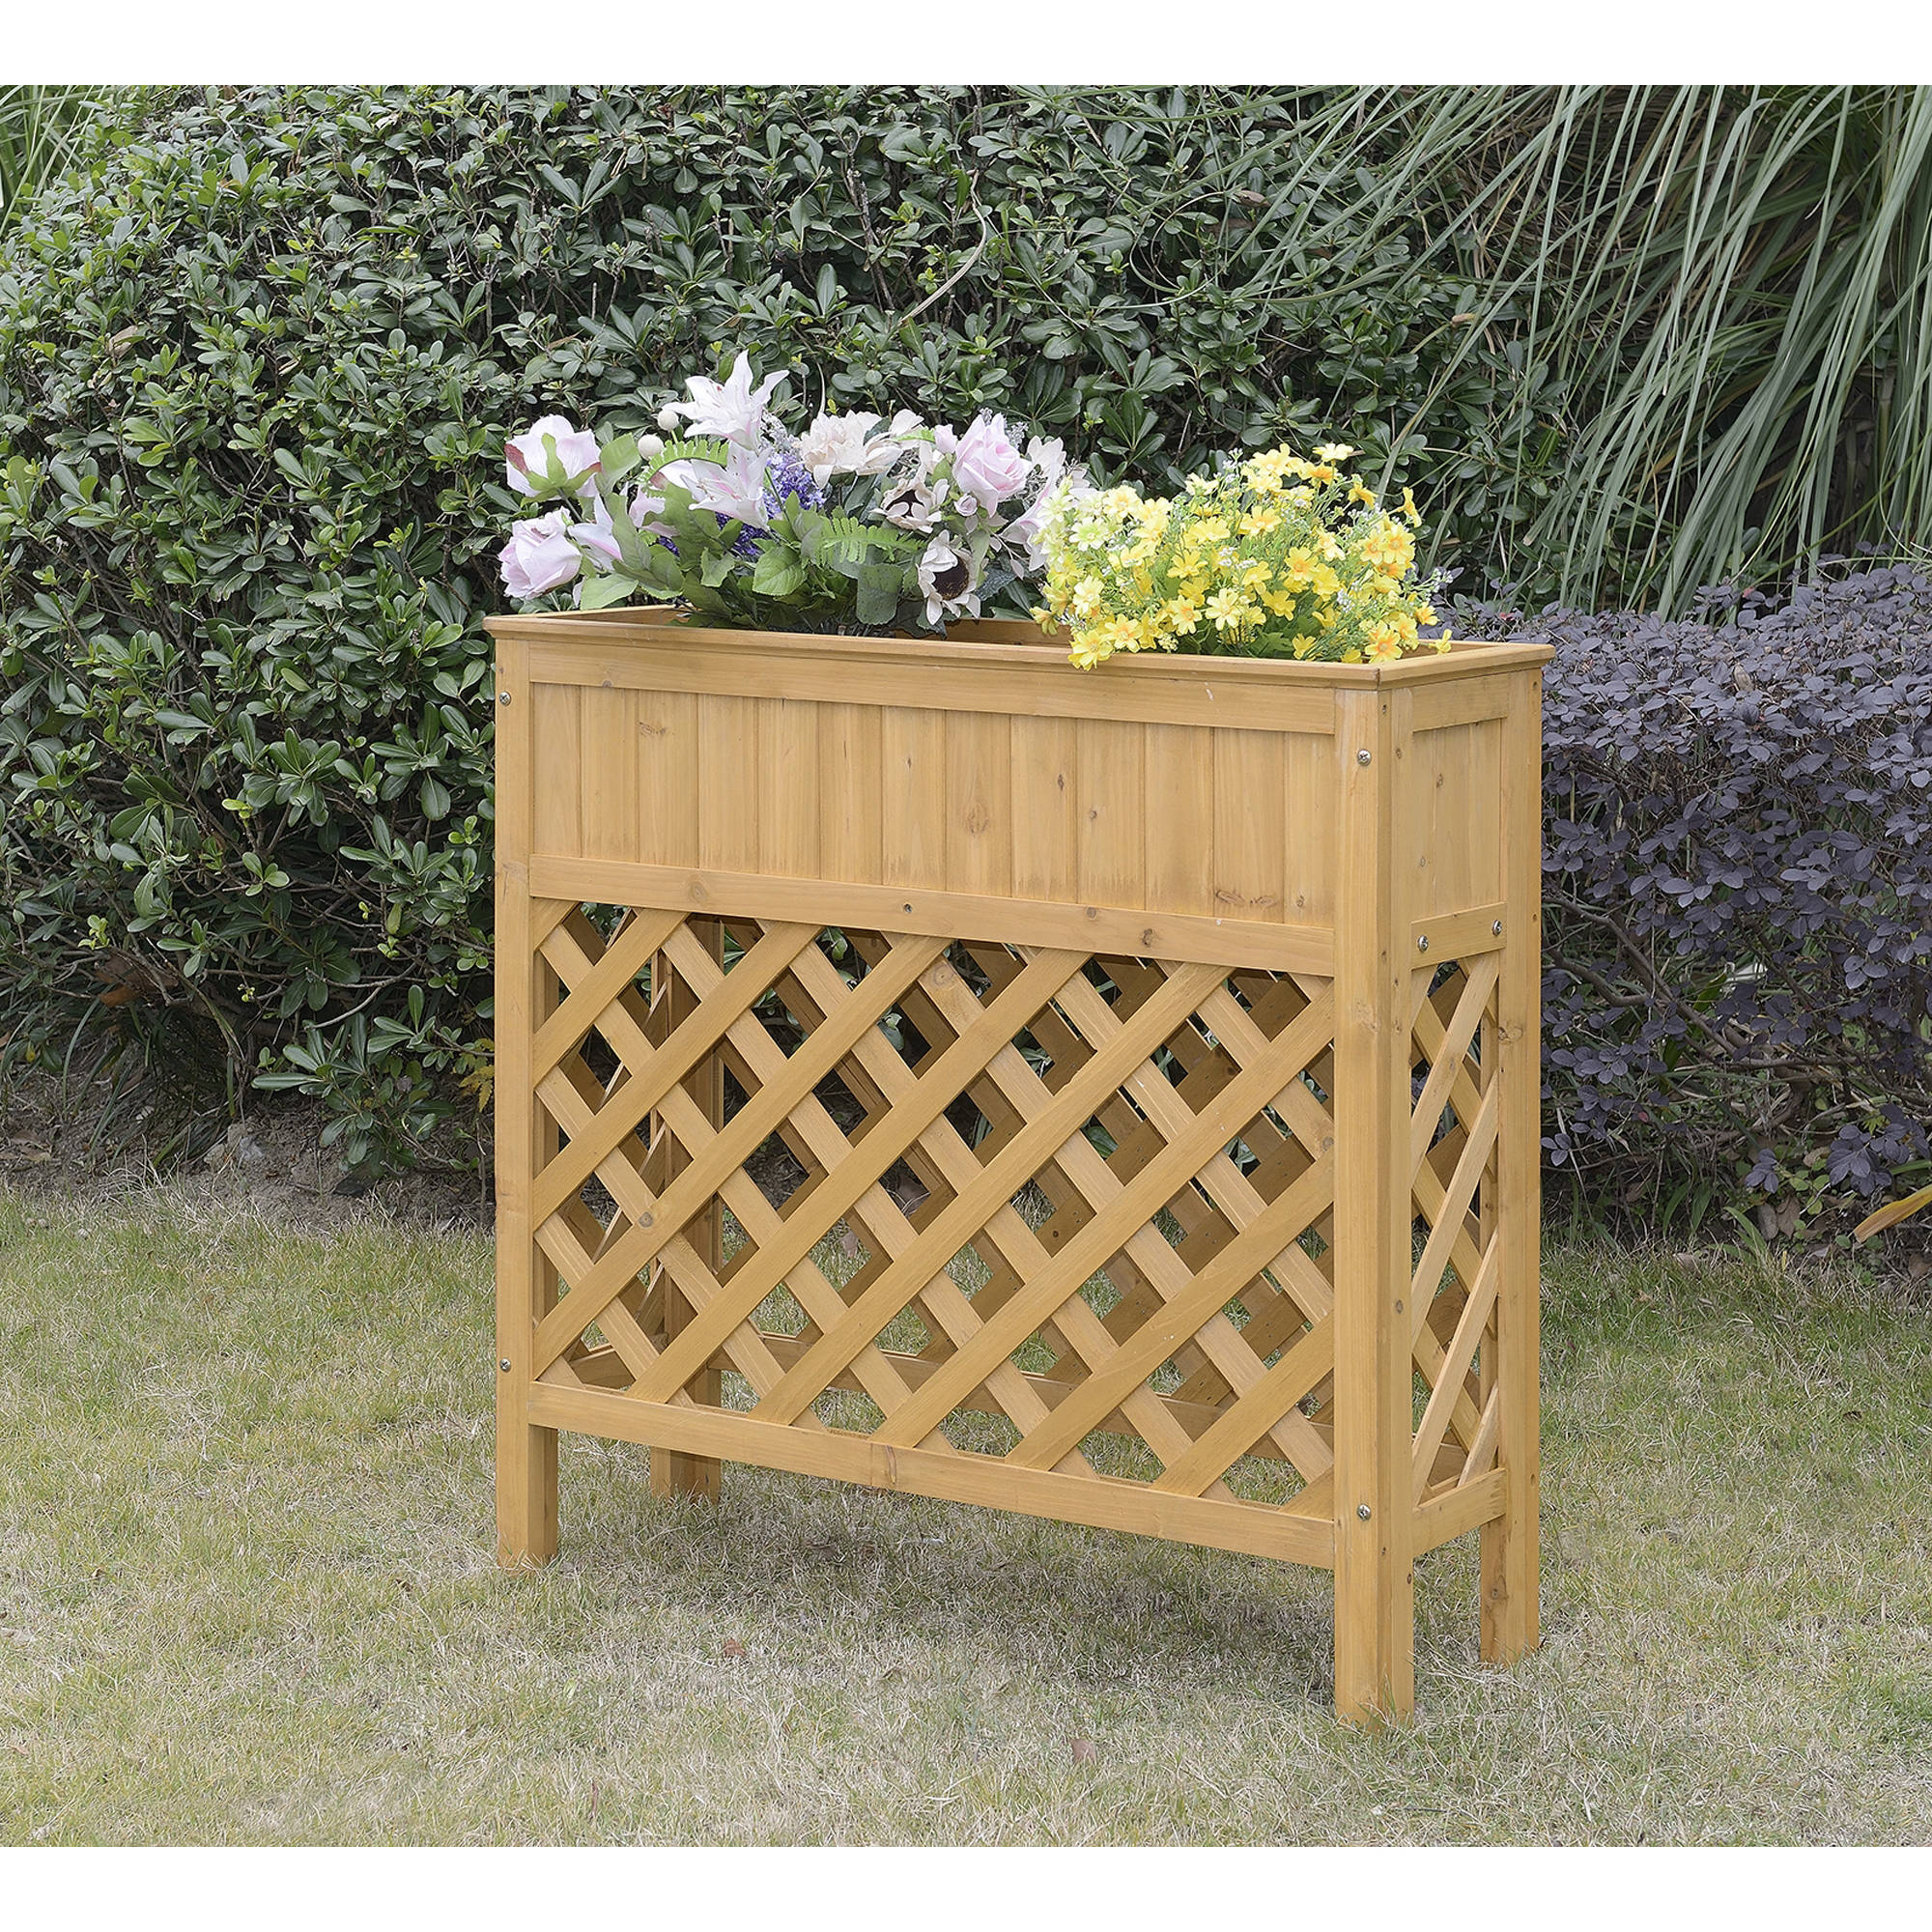 Convenience Concepts Planters & Potts Raised Patio Planter by Overstock